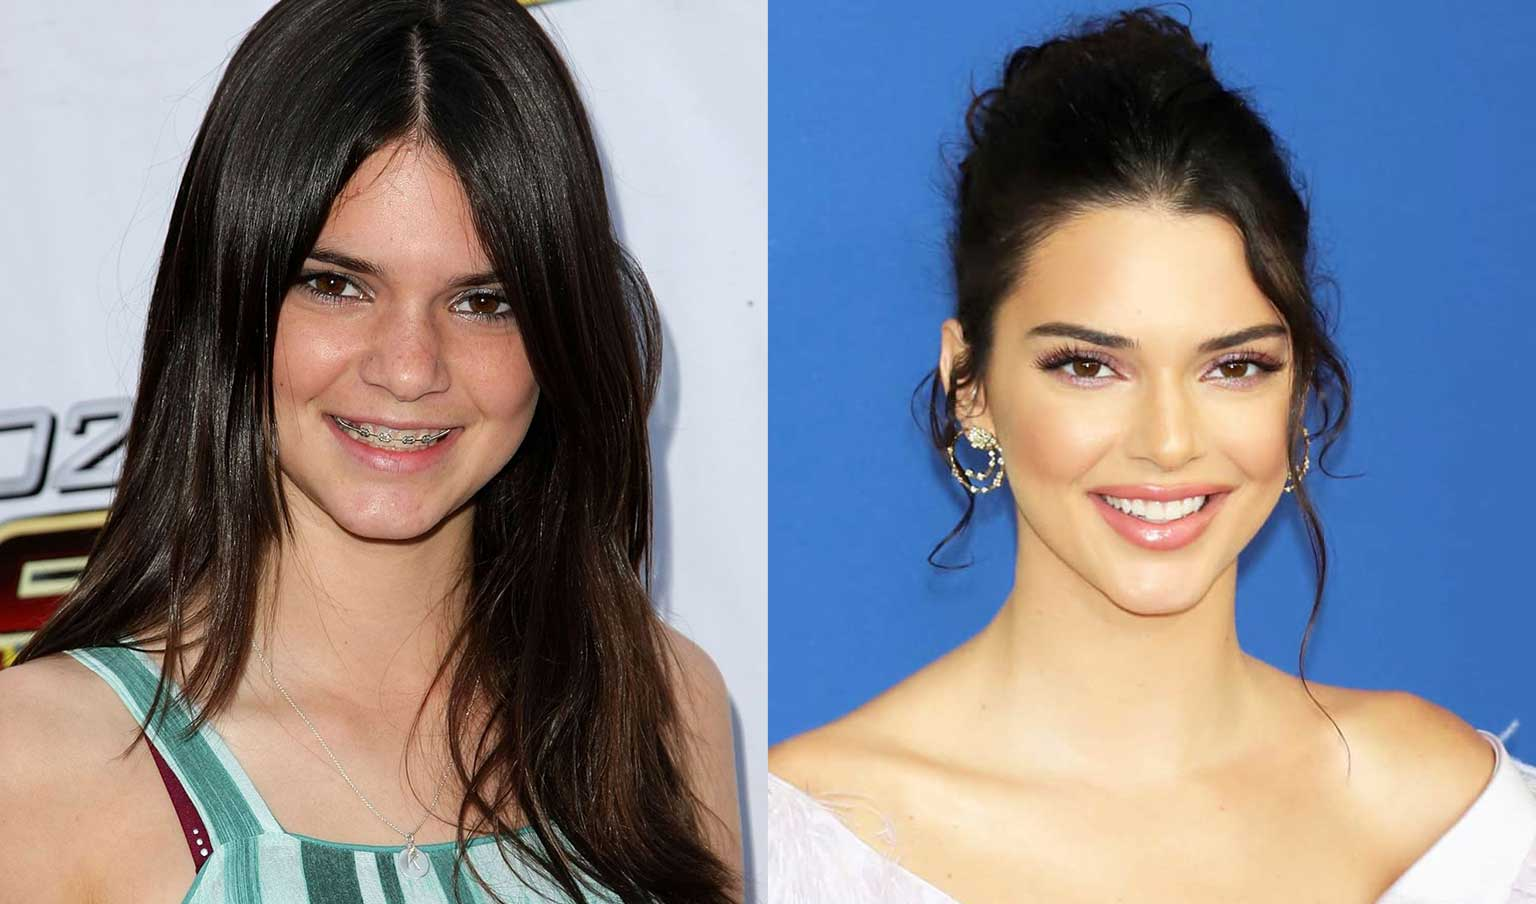 Kendall Jenner celebrities braces before and after